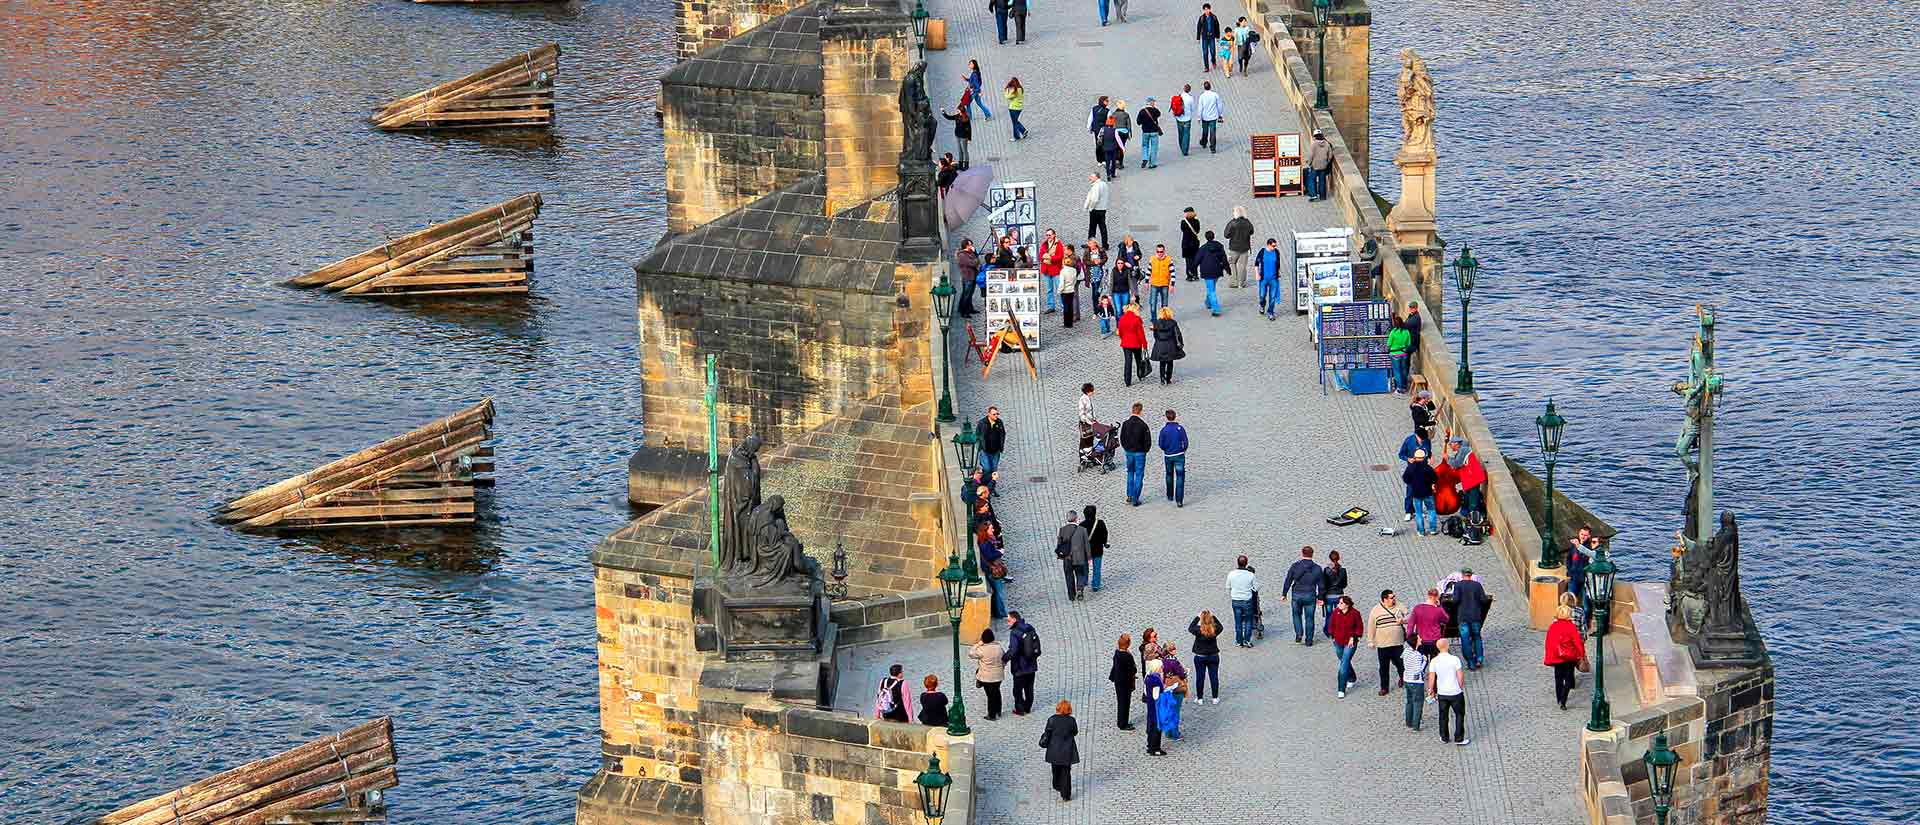 Vltava River and Charles Bridge, Prague, Central Bohemia, Czech Republic